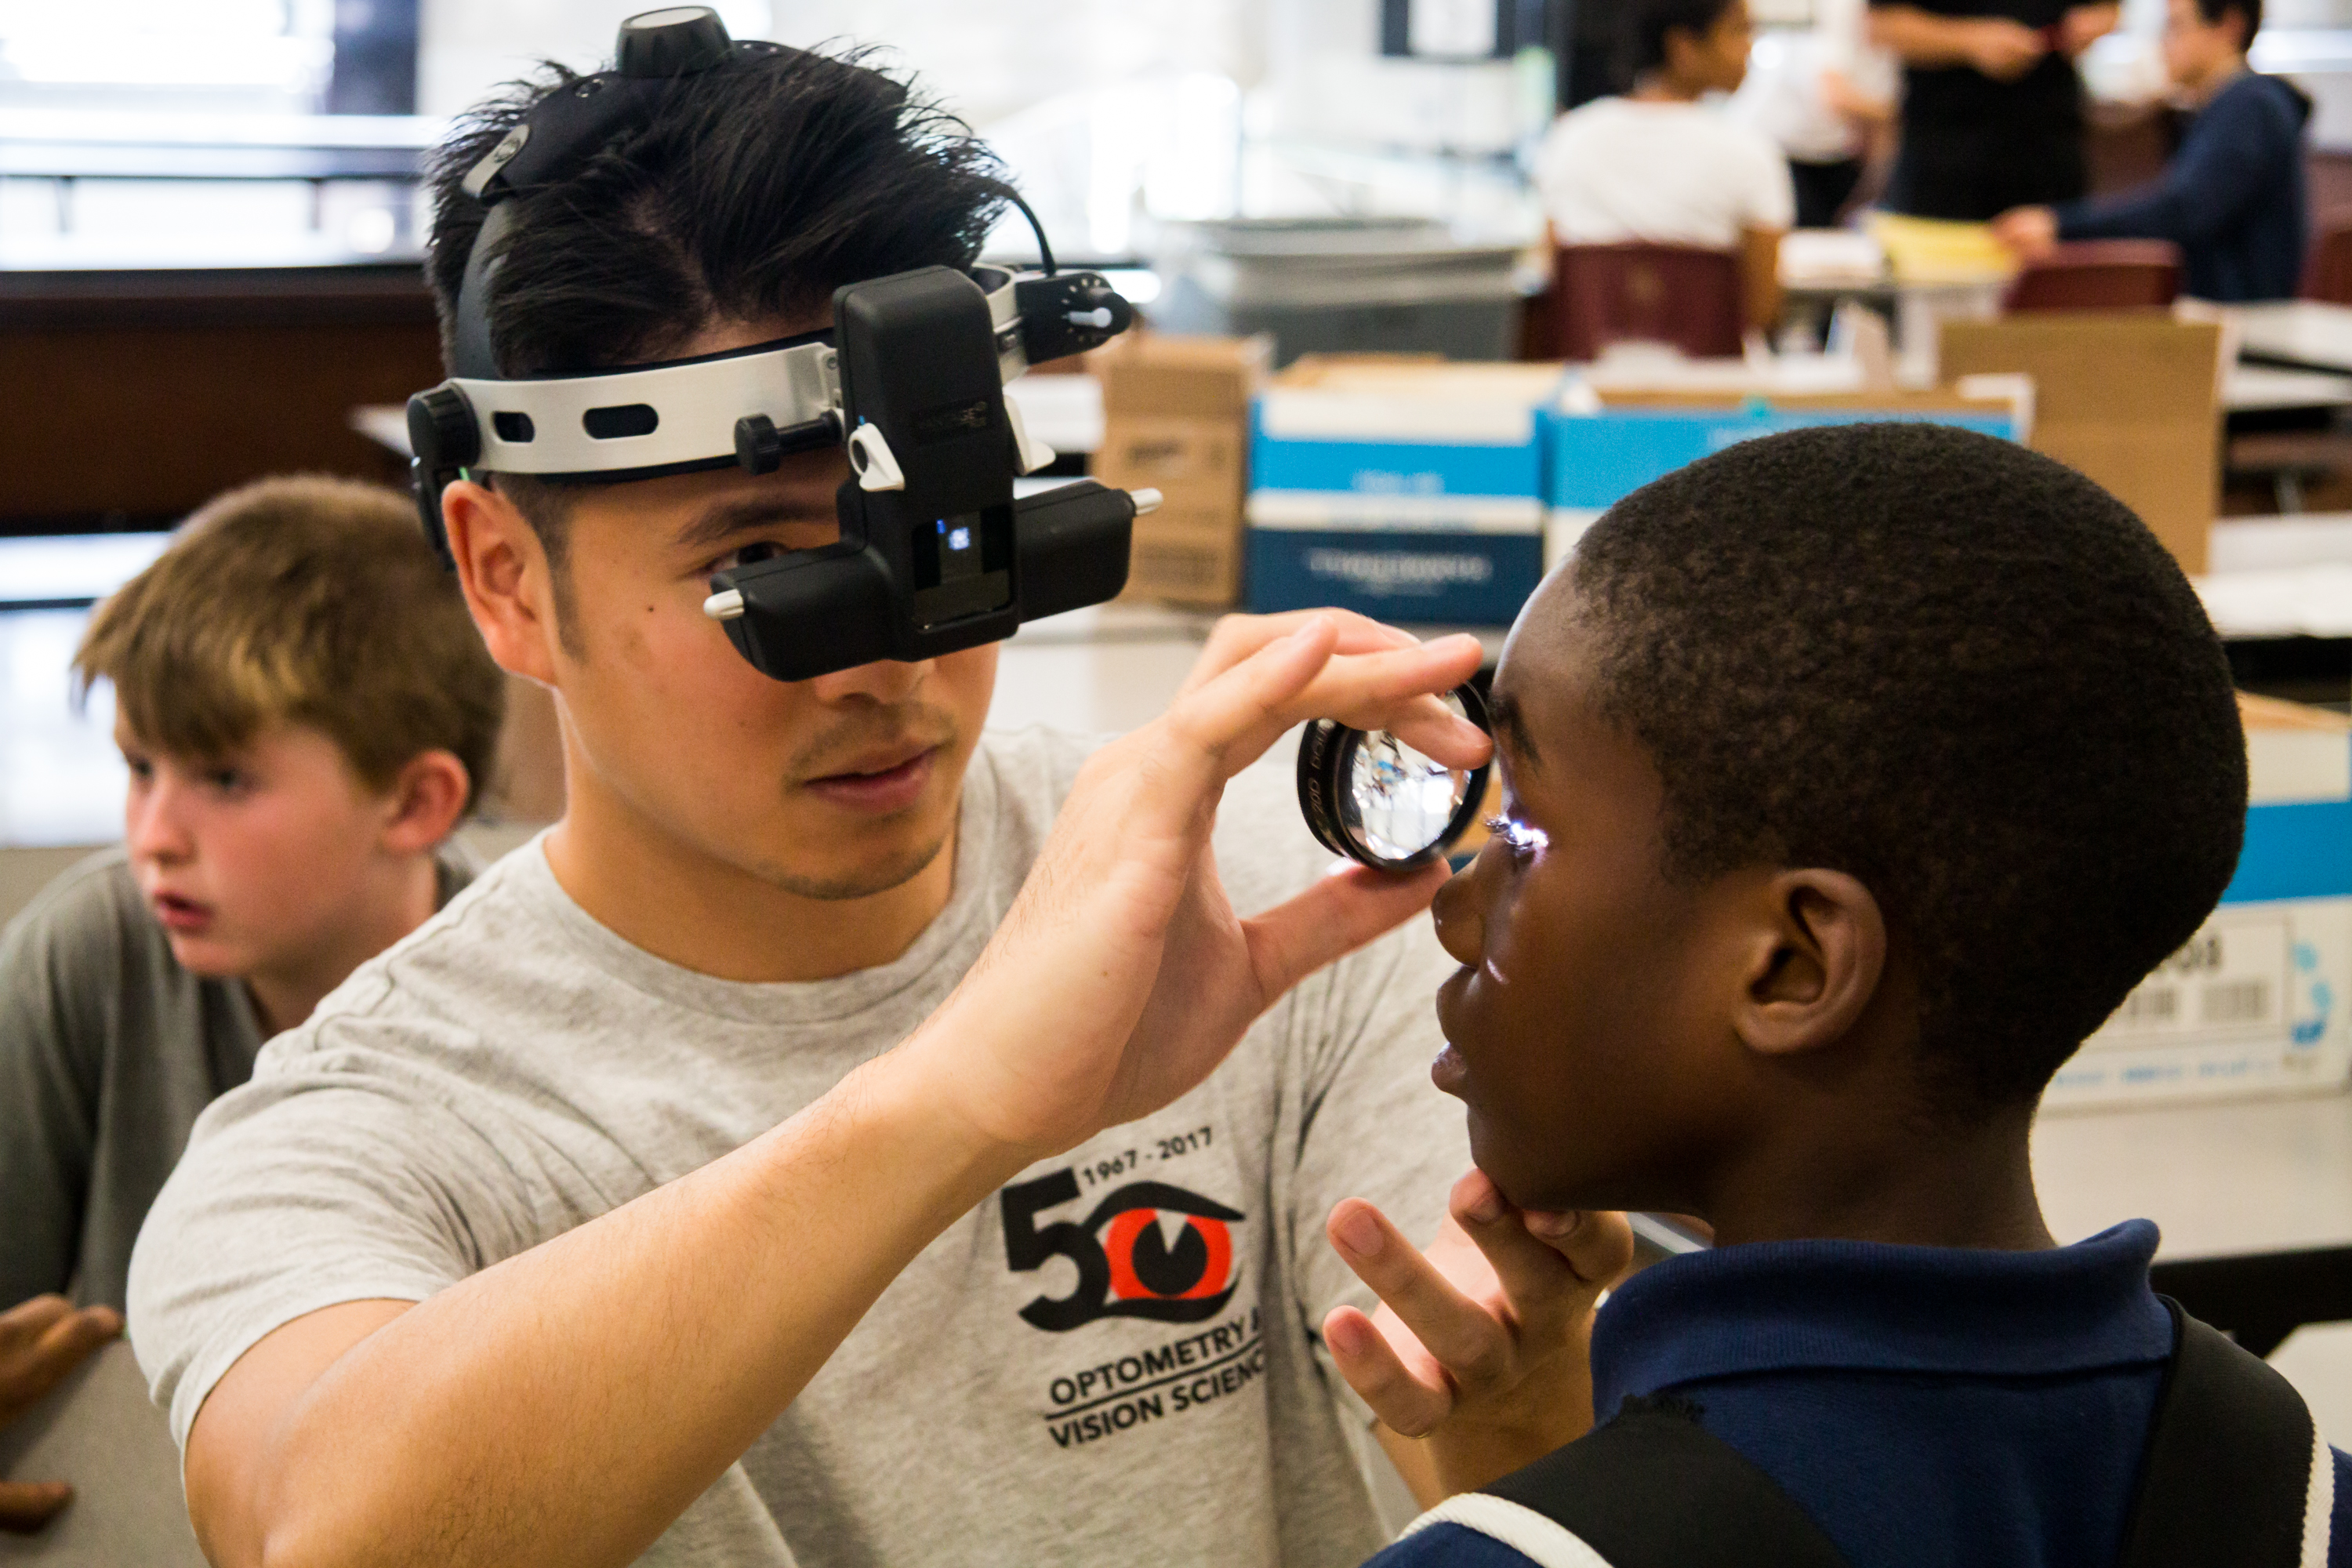 Optometry Doctoral student provides an eye exam